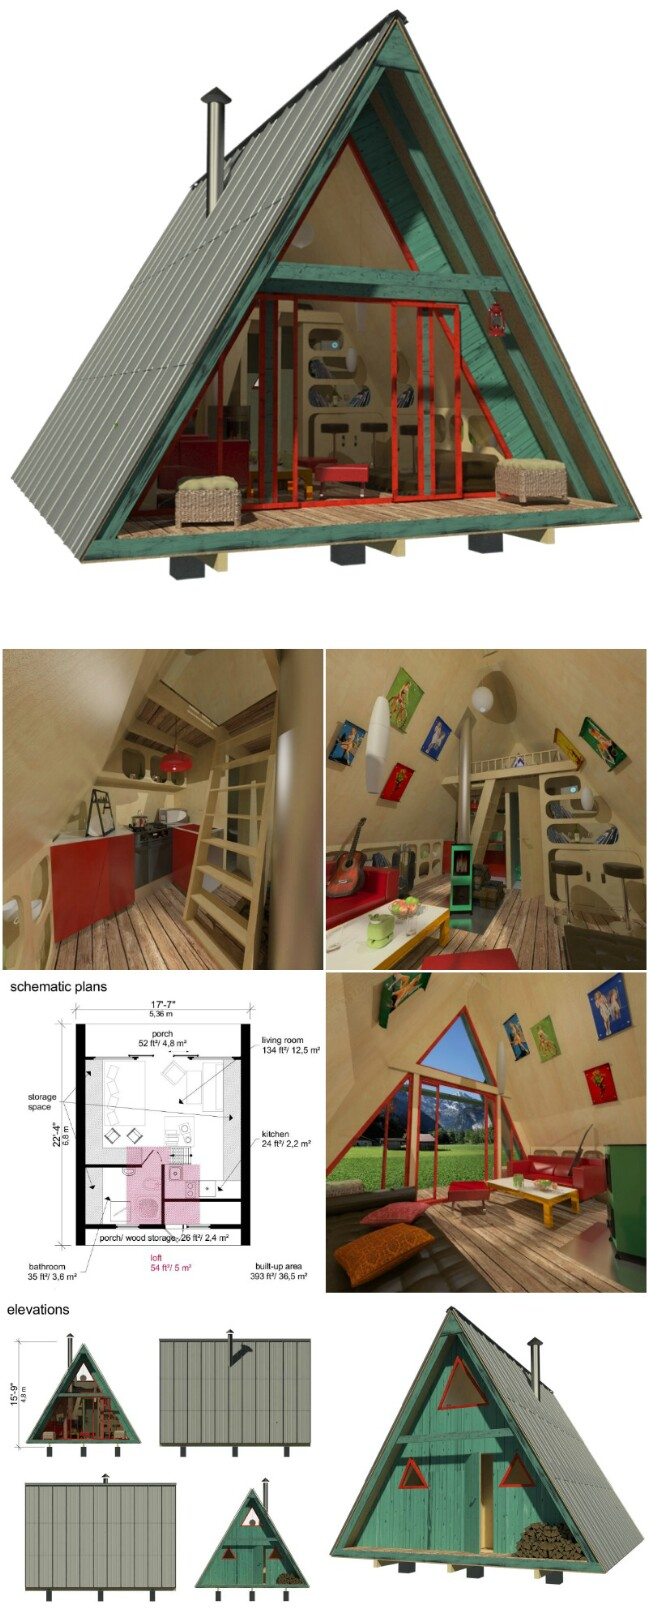 25 plans to build your own fully customized tiny house on for Build own house plans